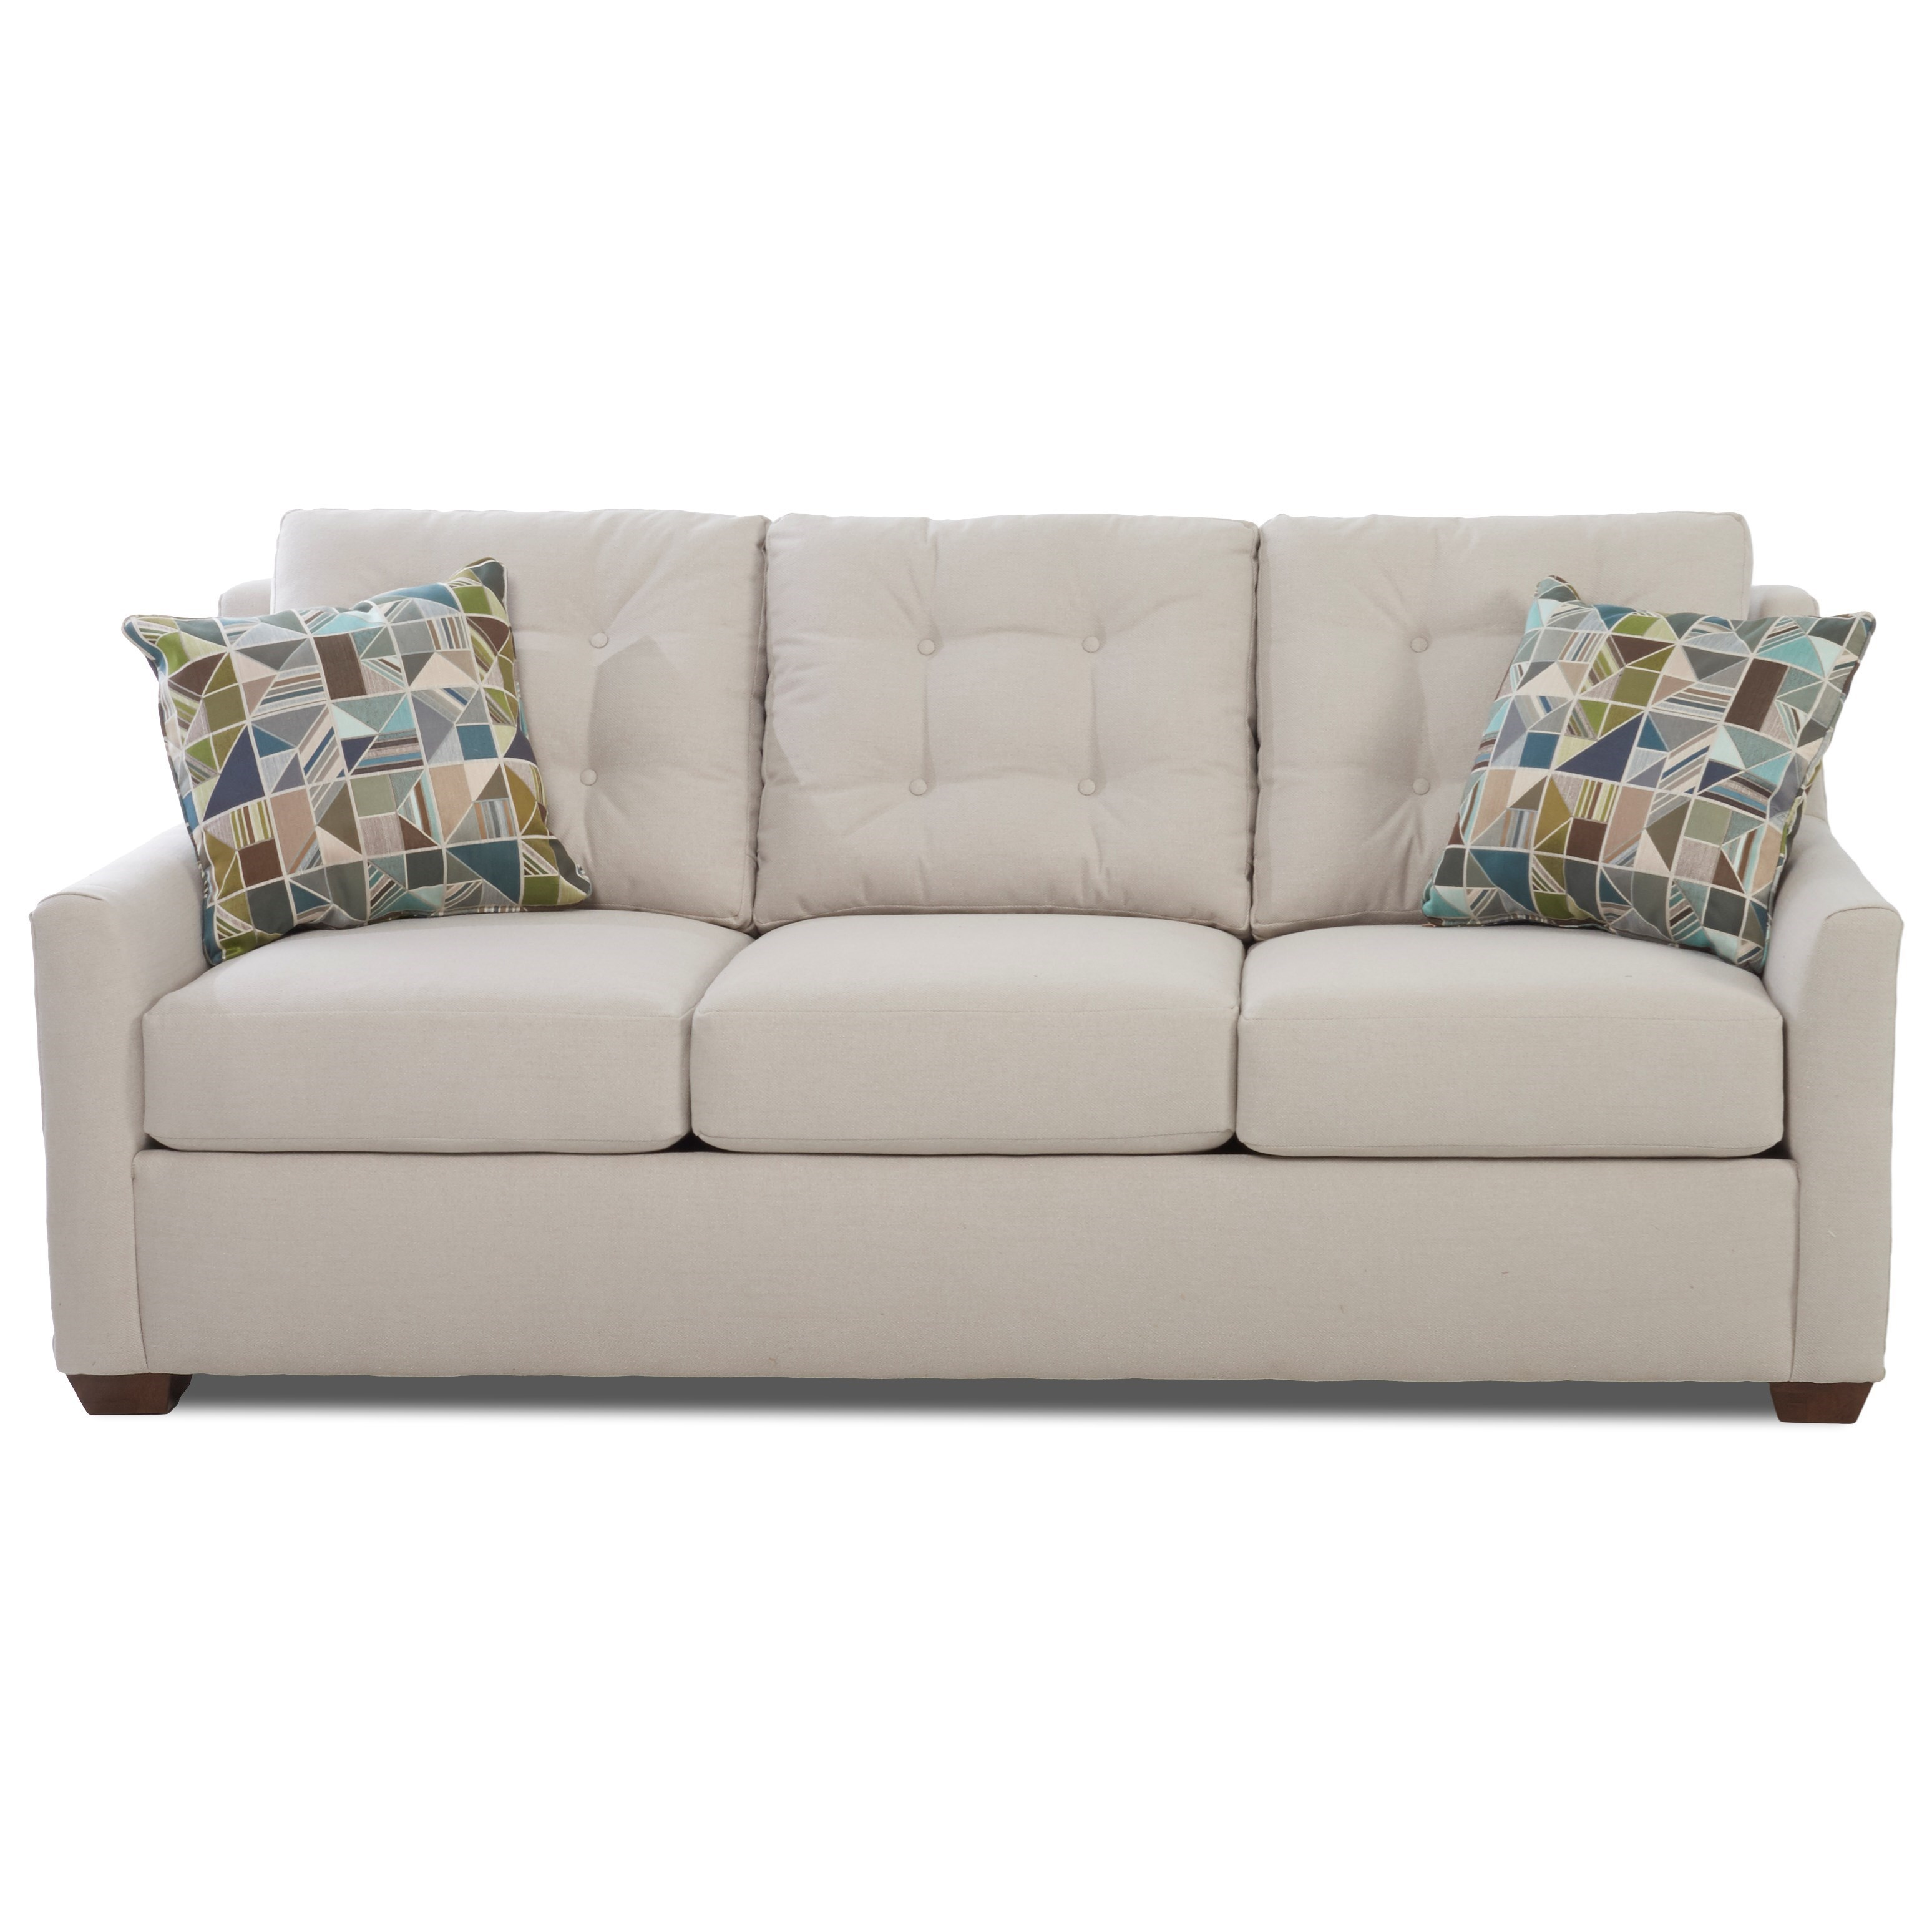 Queen Dreamquest Sleeper Sofa with Button Tufting and Innerspring Support